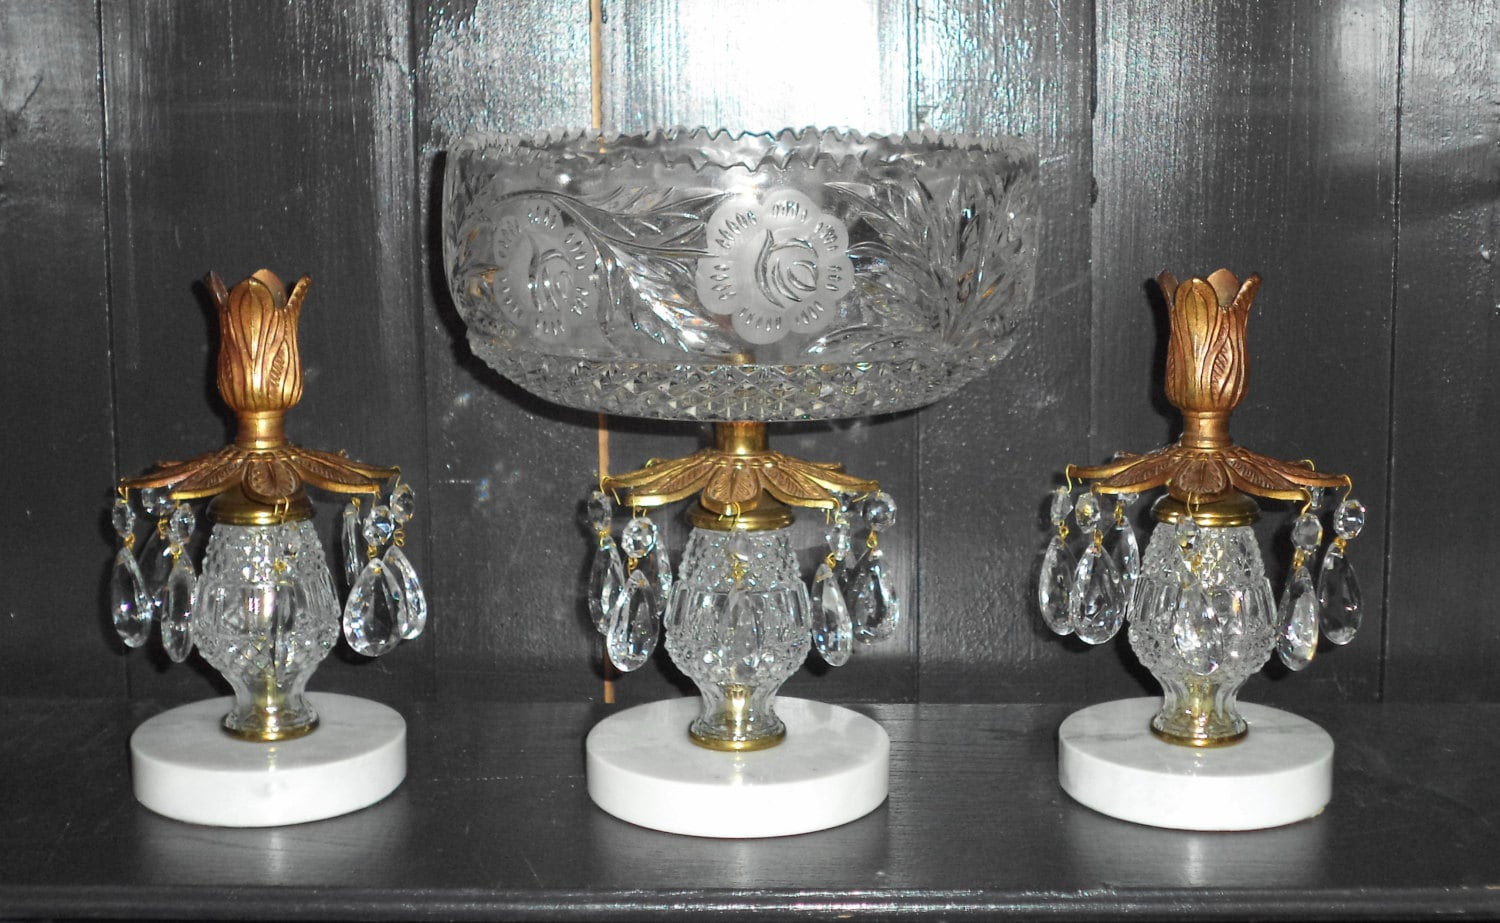 Vintage Glass Centerpiece : Antique crystal cut glass centerpiece compote candle holder